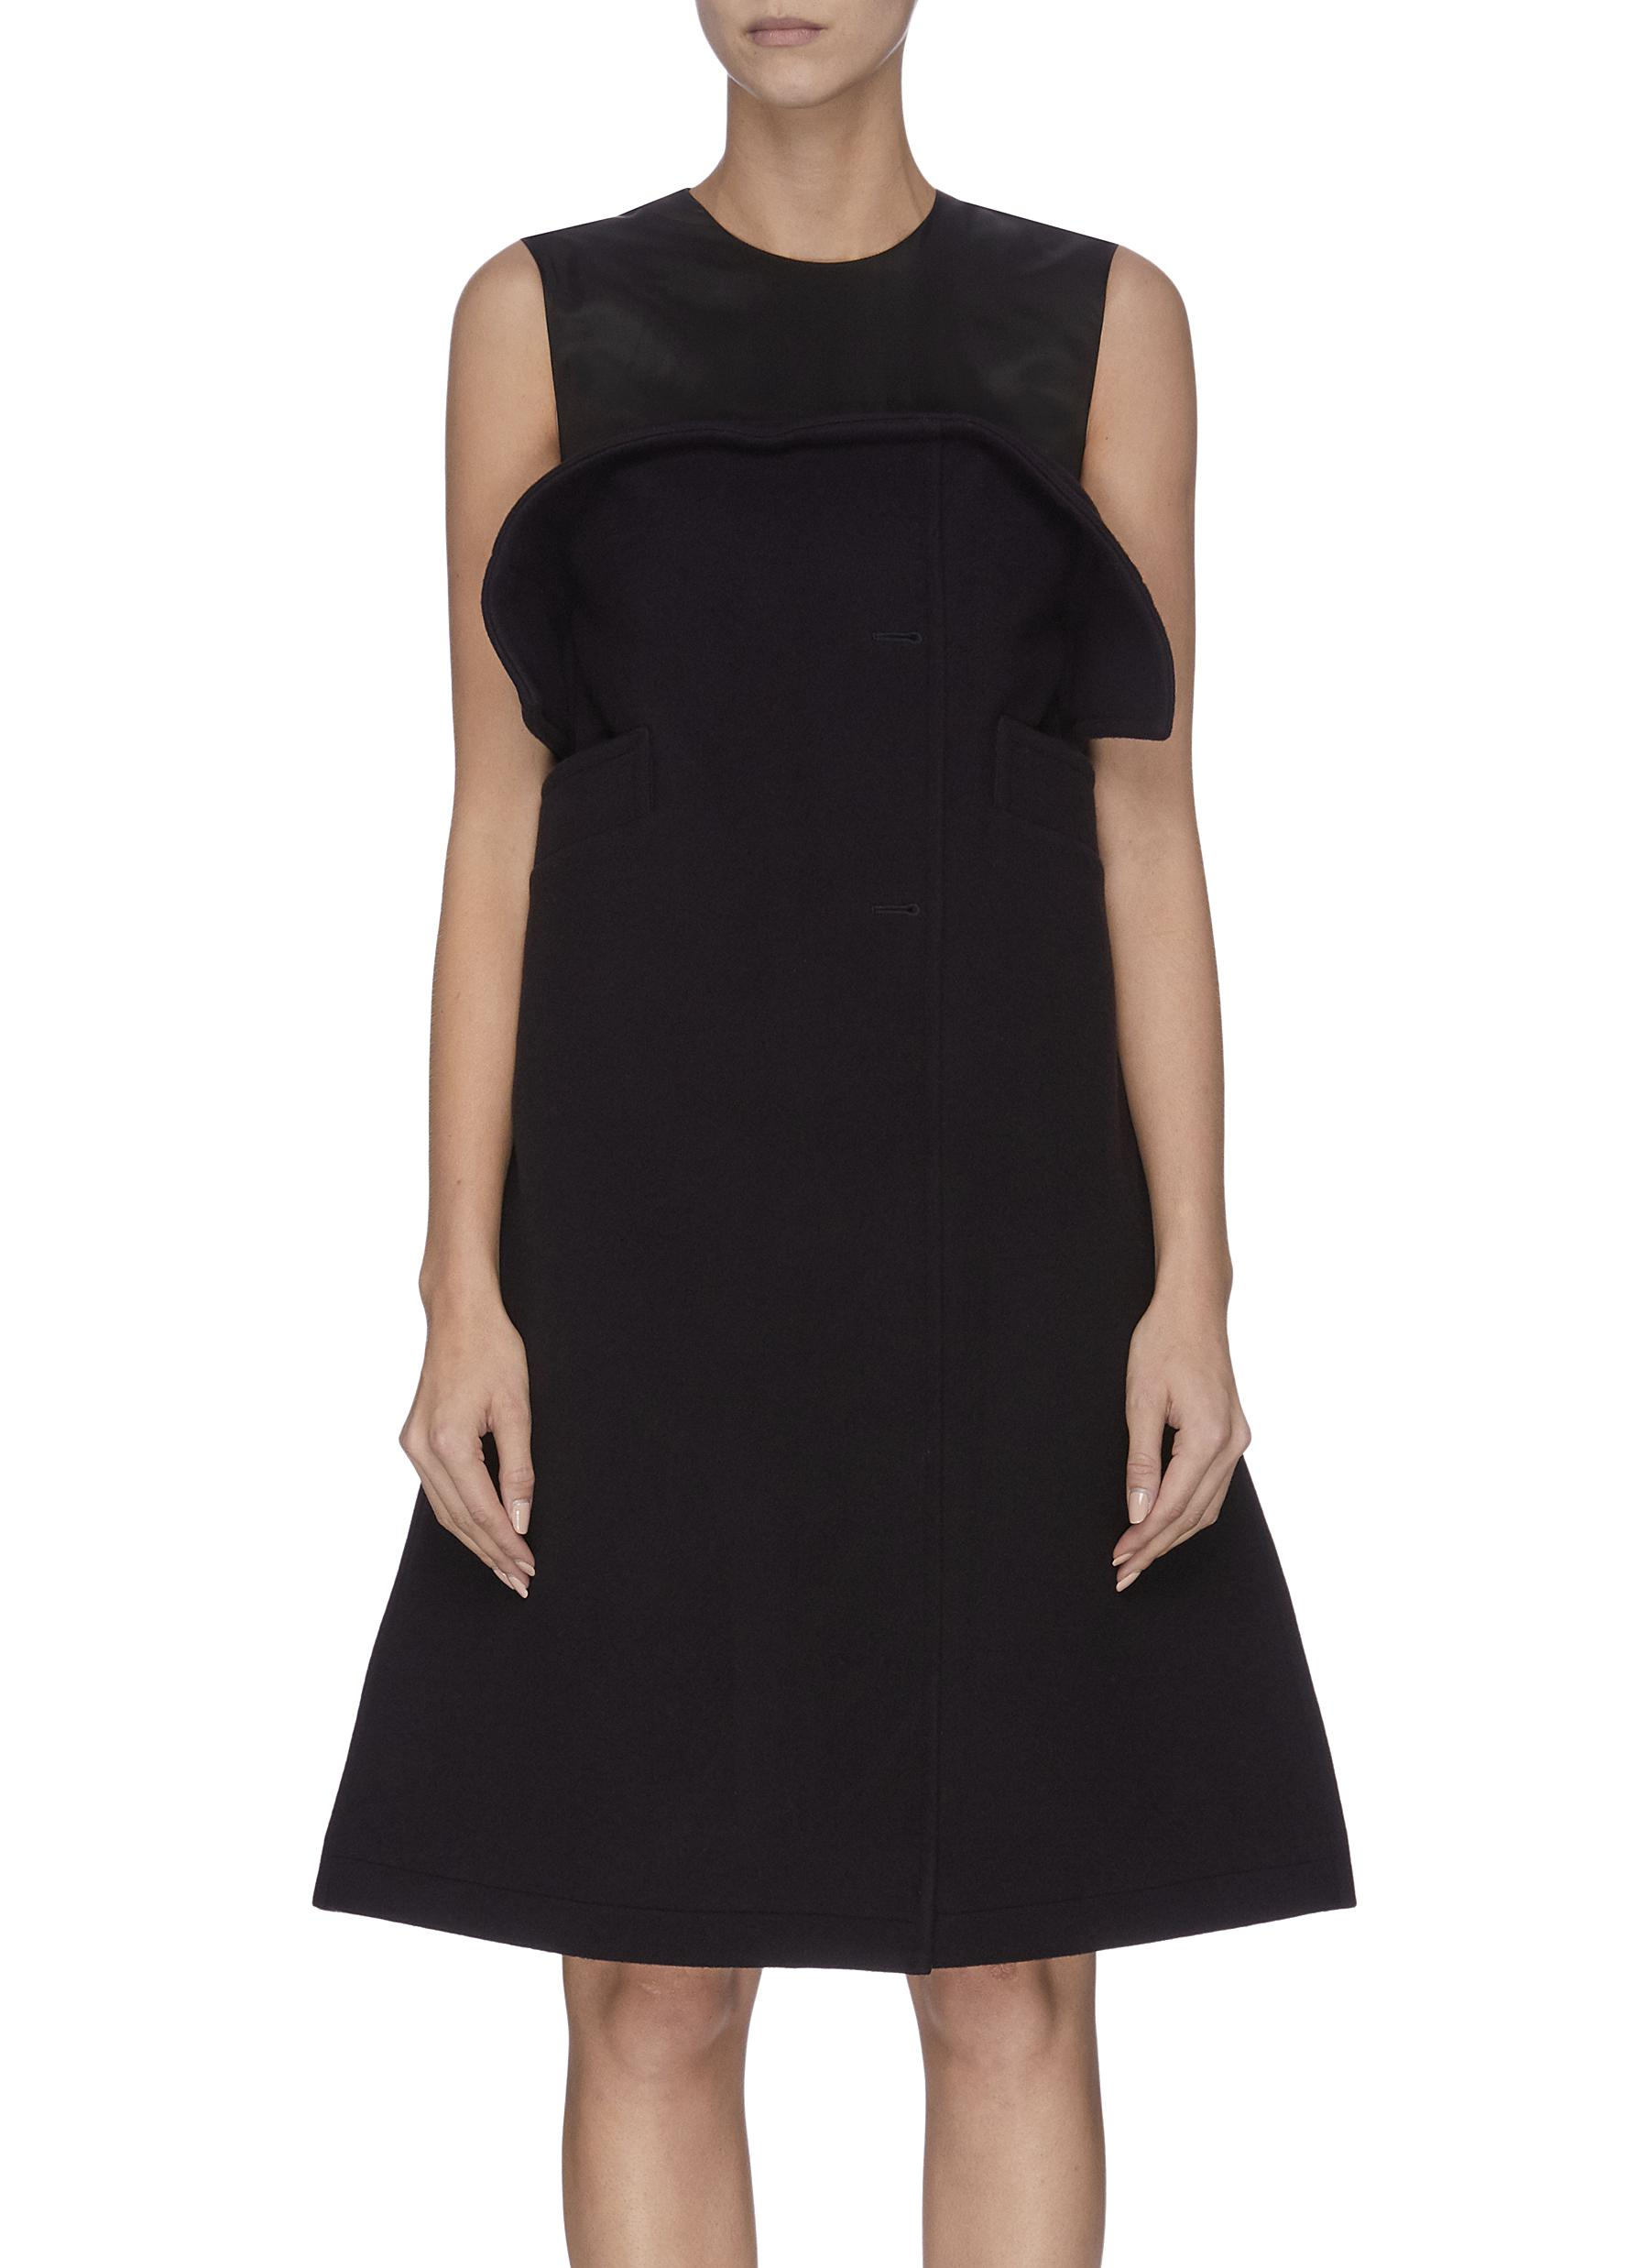 Welt pocket panelled bustier shift dress by Maison Margiela